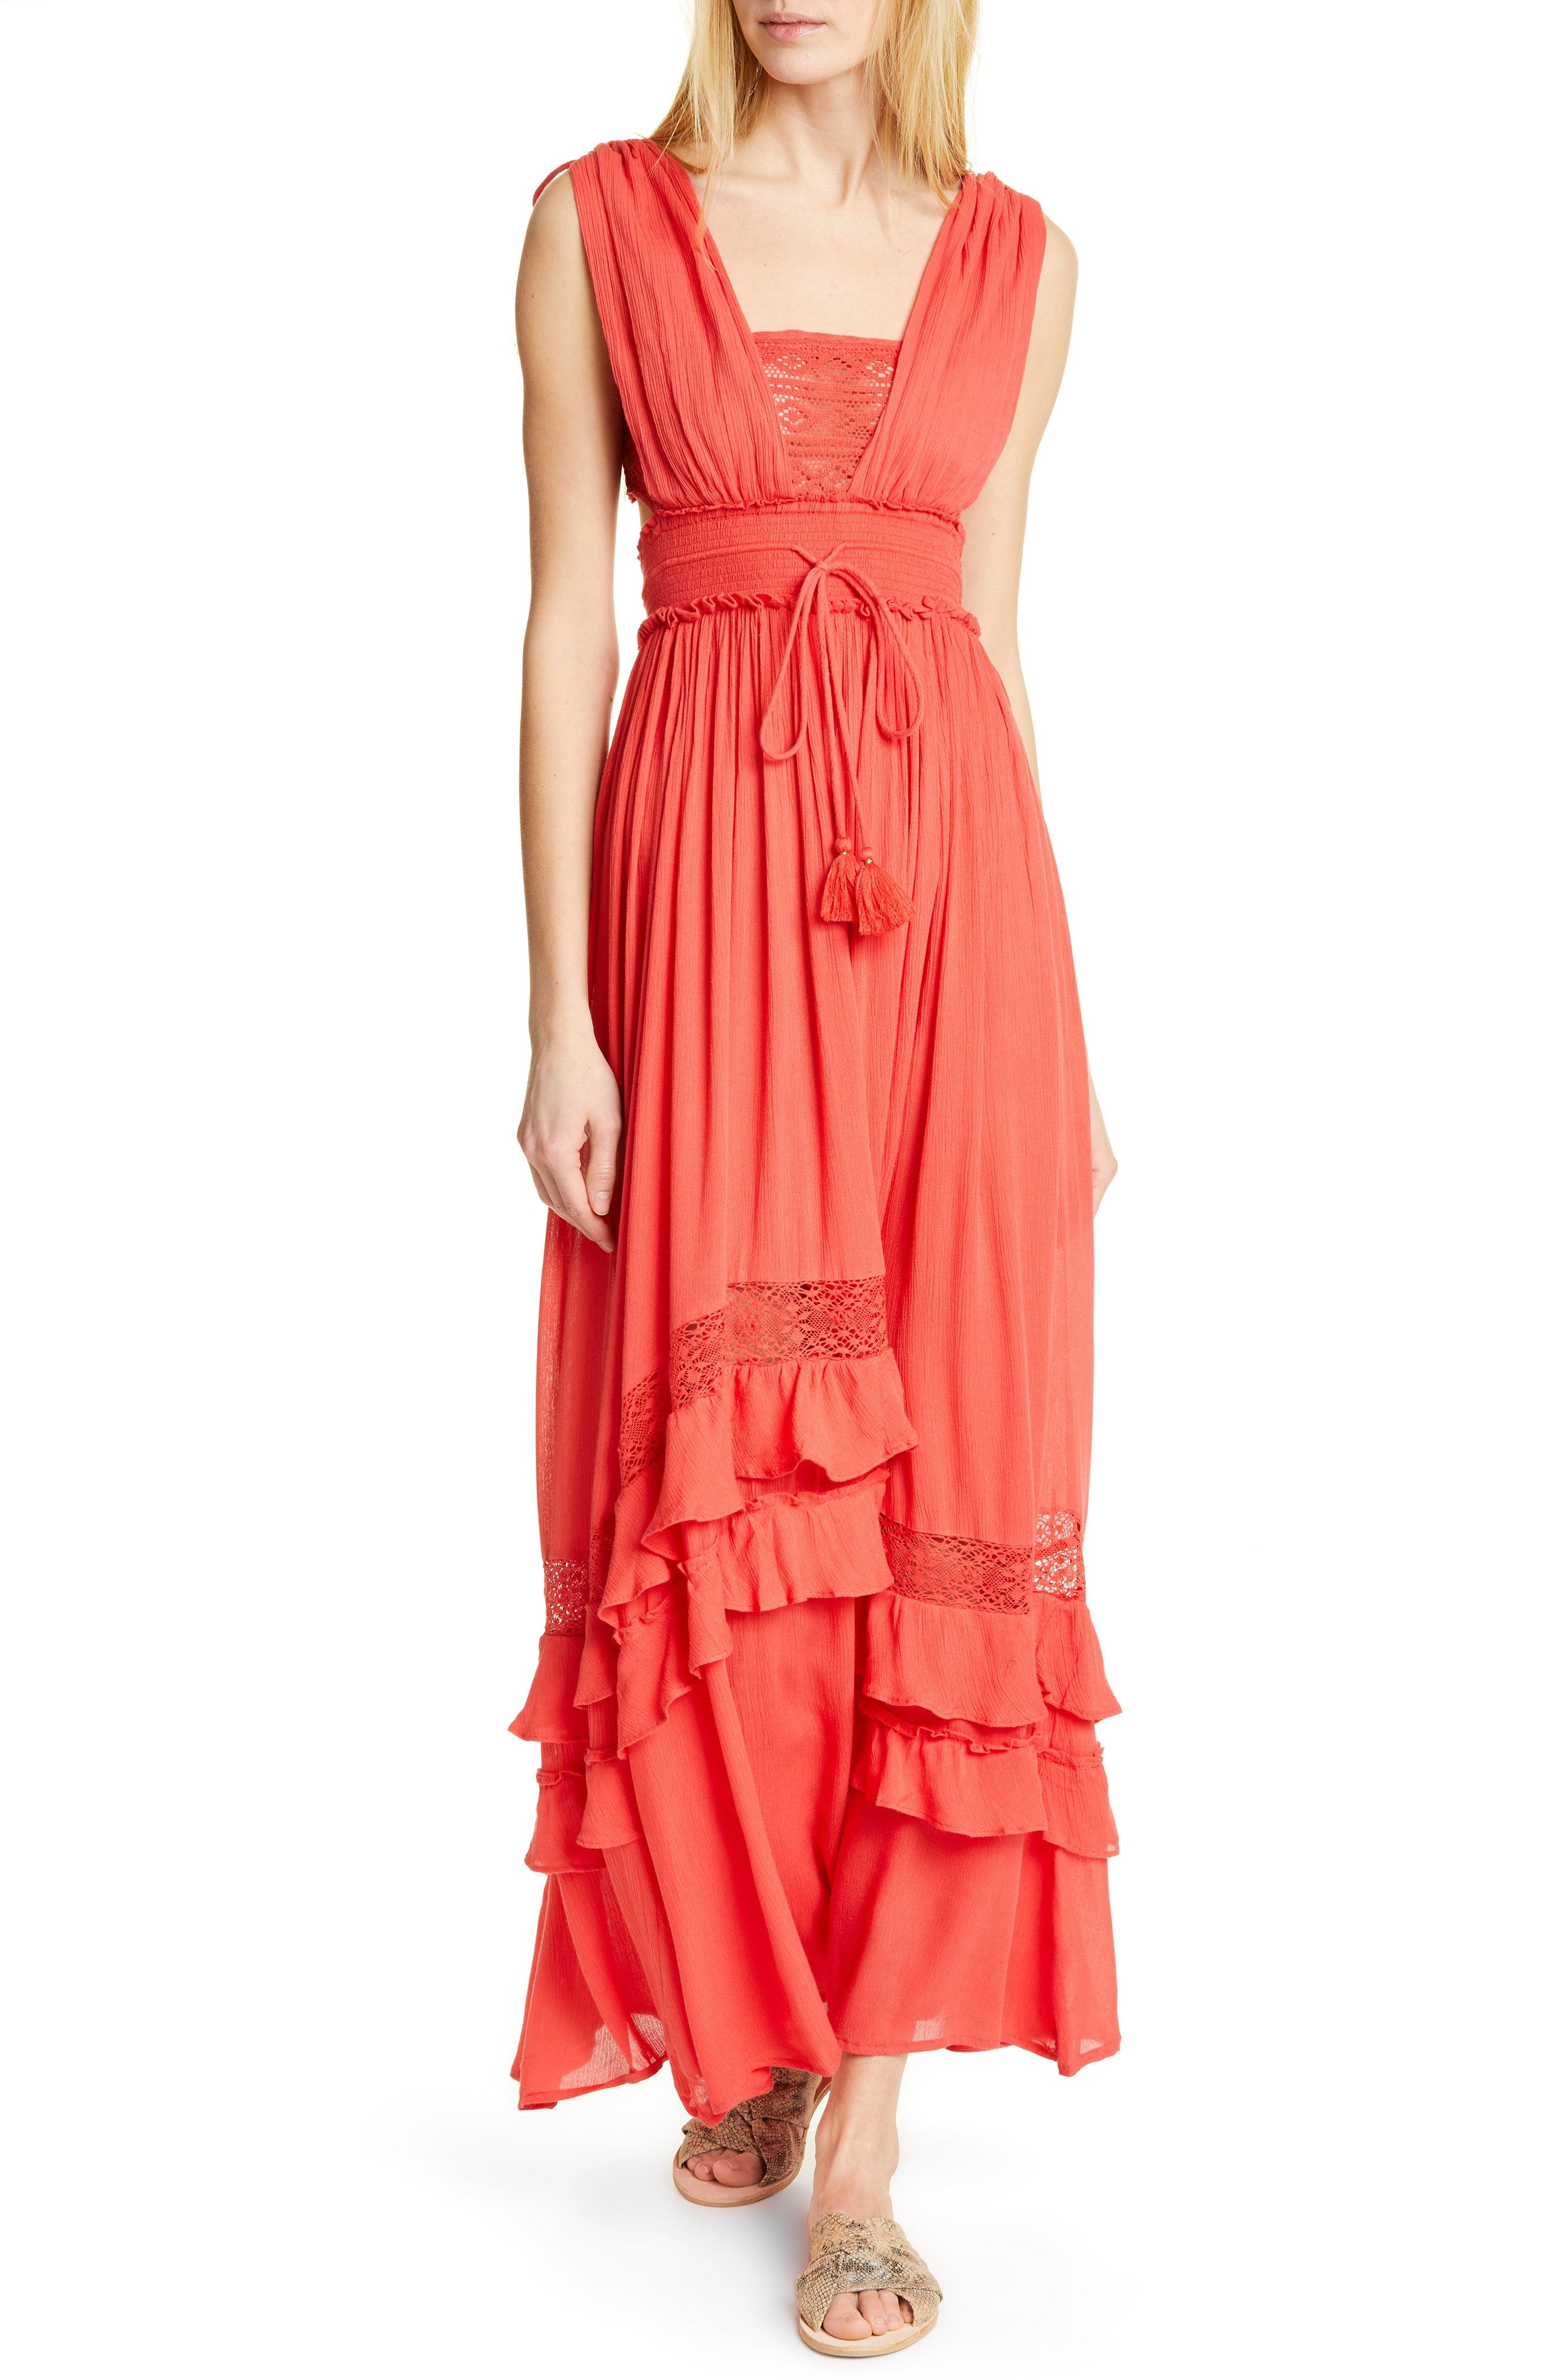 Free People Endless Summer By Free People Santa Maria Maxi Dress Available At Nordstrom Clothes For Women Maxi Dresses Casual Maxi Dress [ 4048 x 2640 Pixel ]